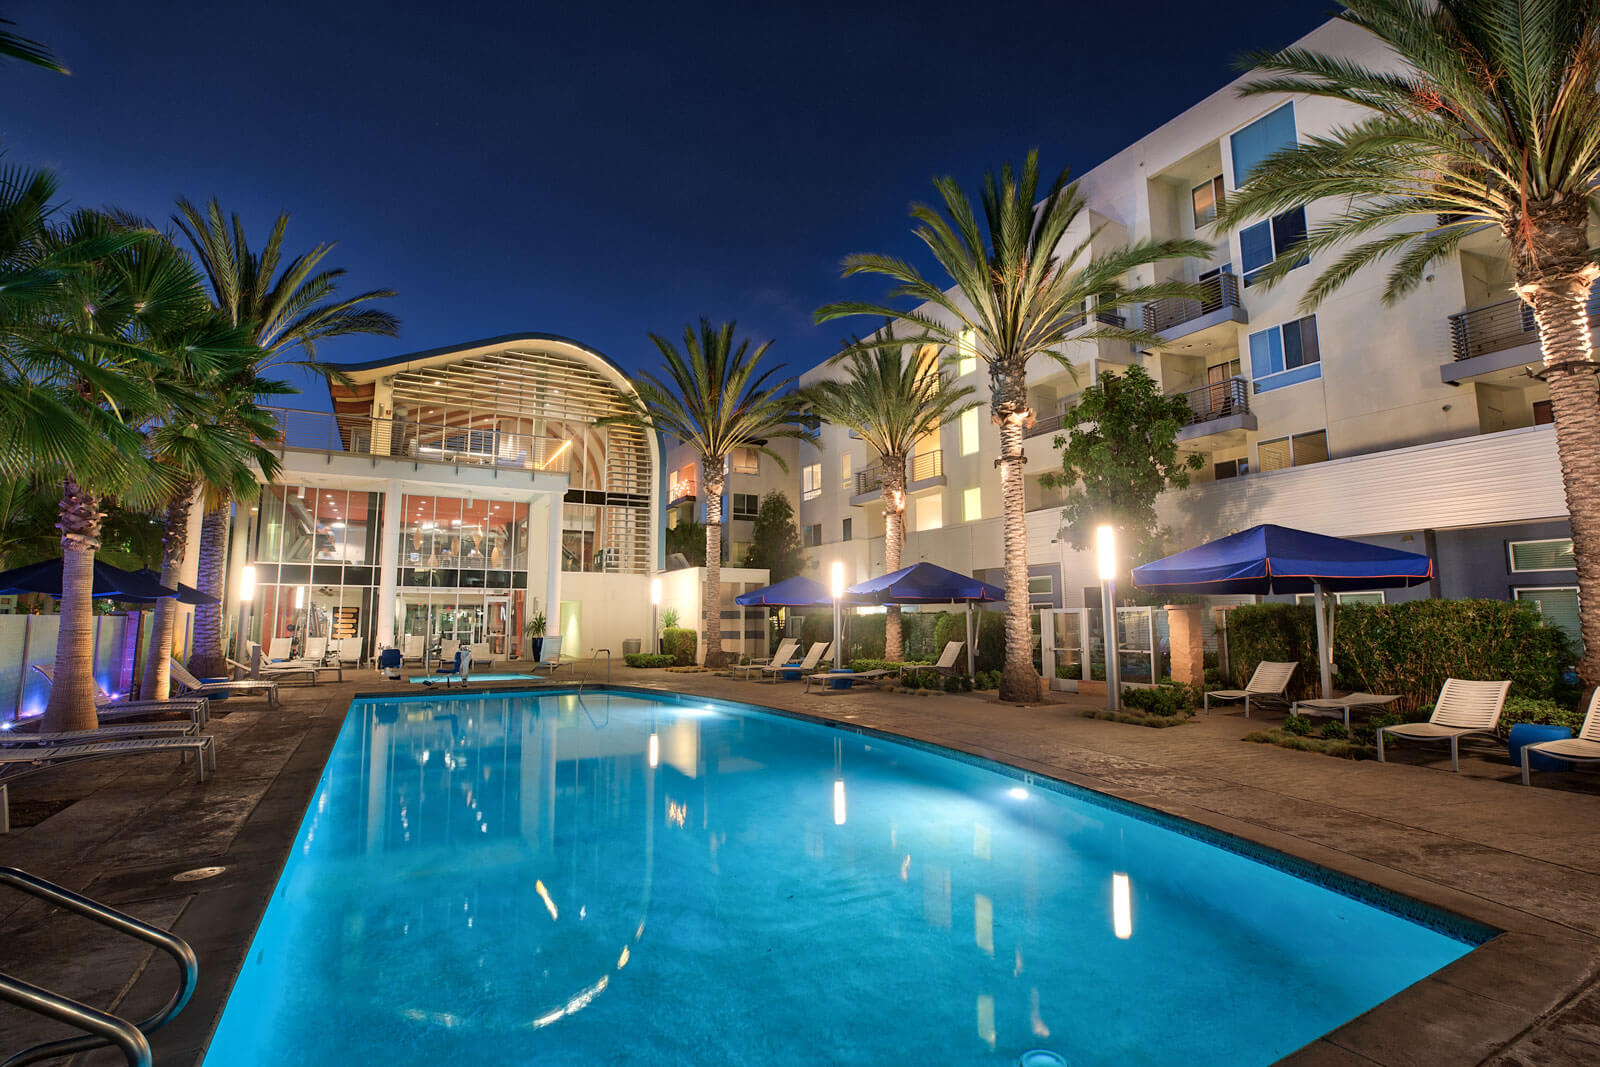 Over 30,000 Square Feet of Resort-Style Amenities at Boardwalk by Windsor, Huntington Beach, California